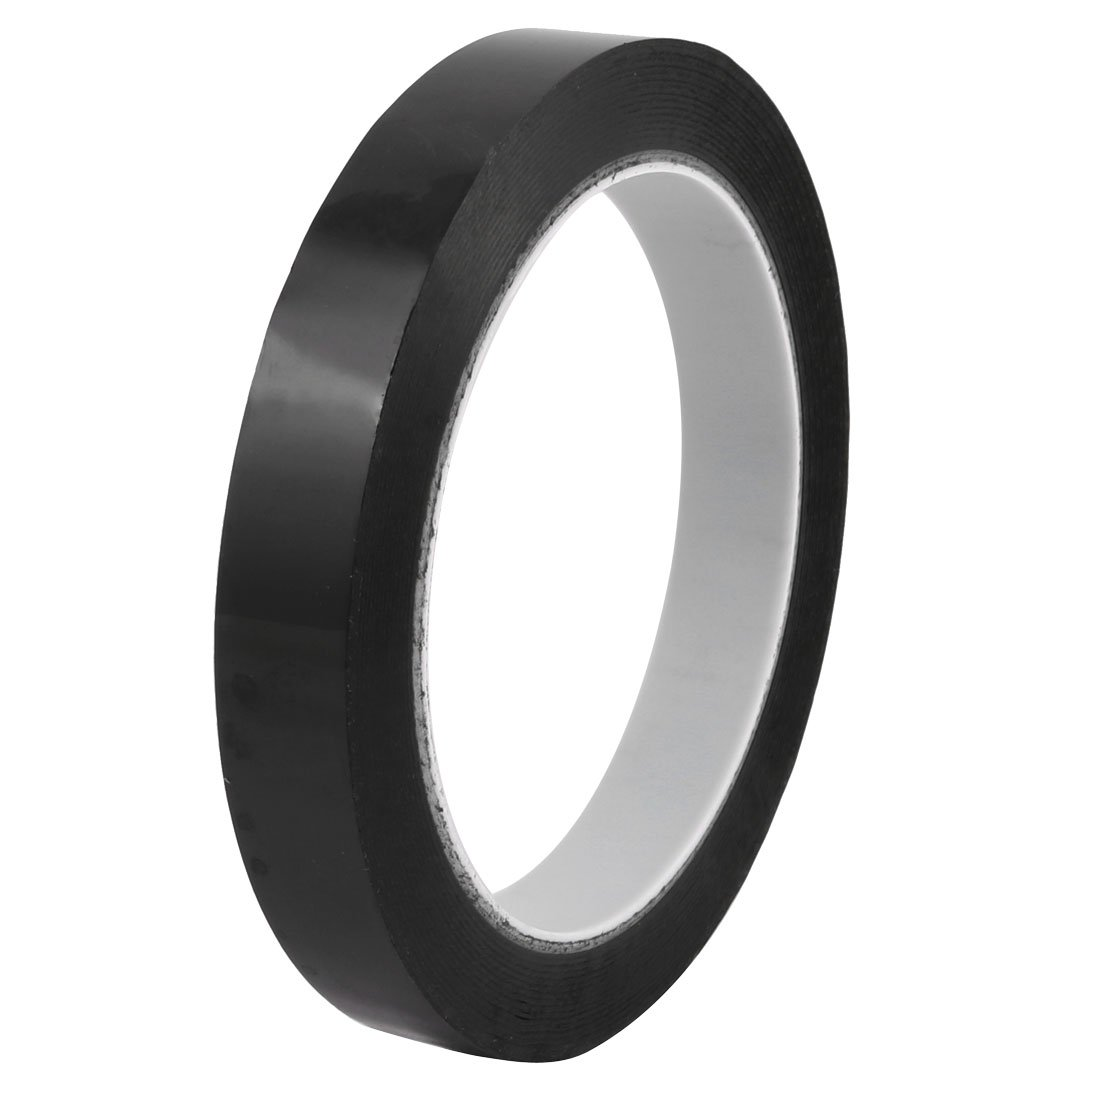 uxcell 18mm Width 66m Length Waterproof Black Single Sided Adhesive Marking Tape